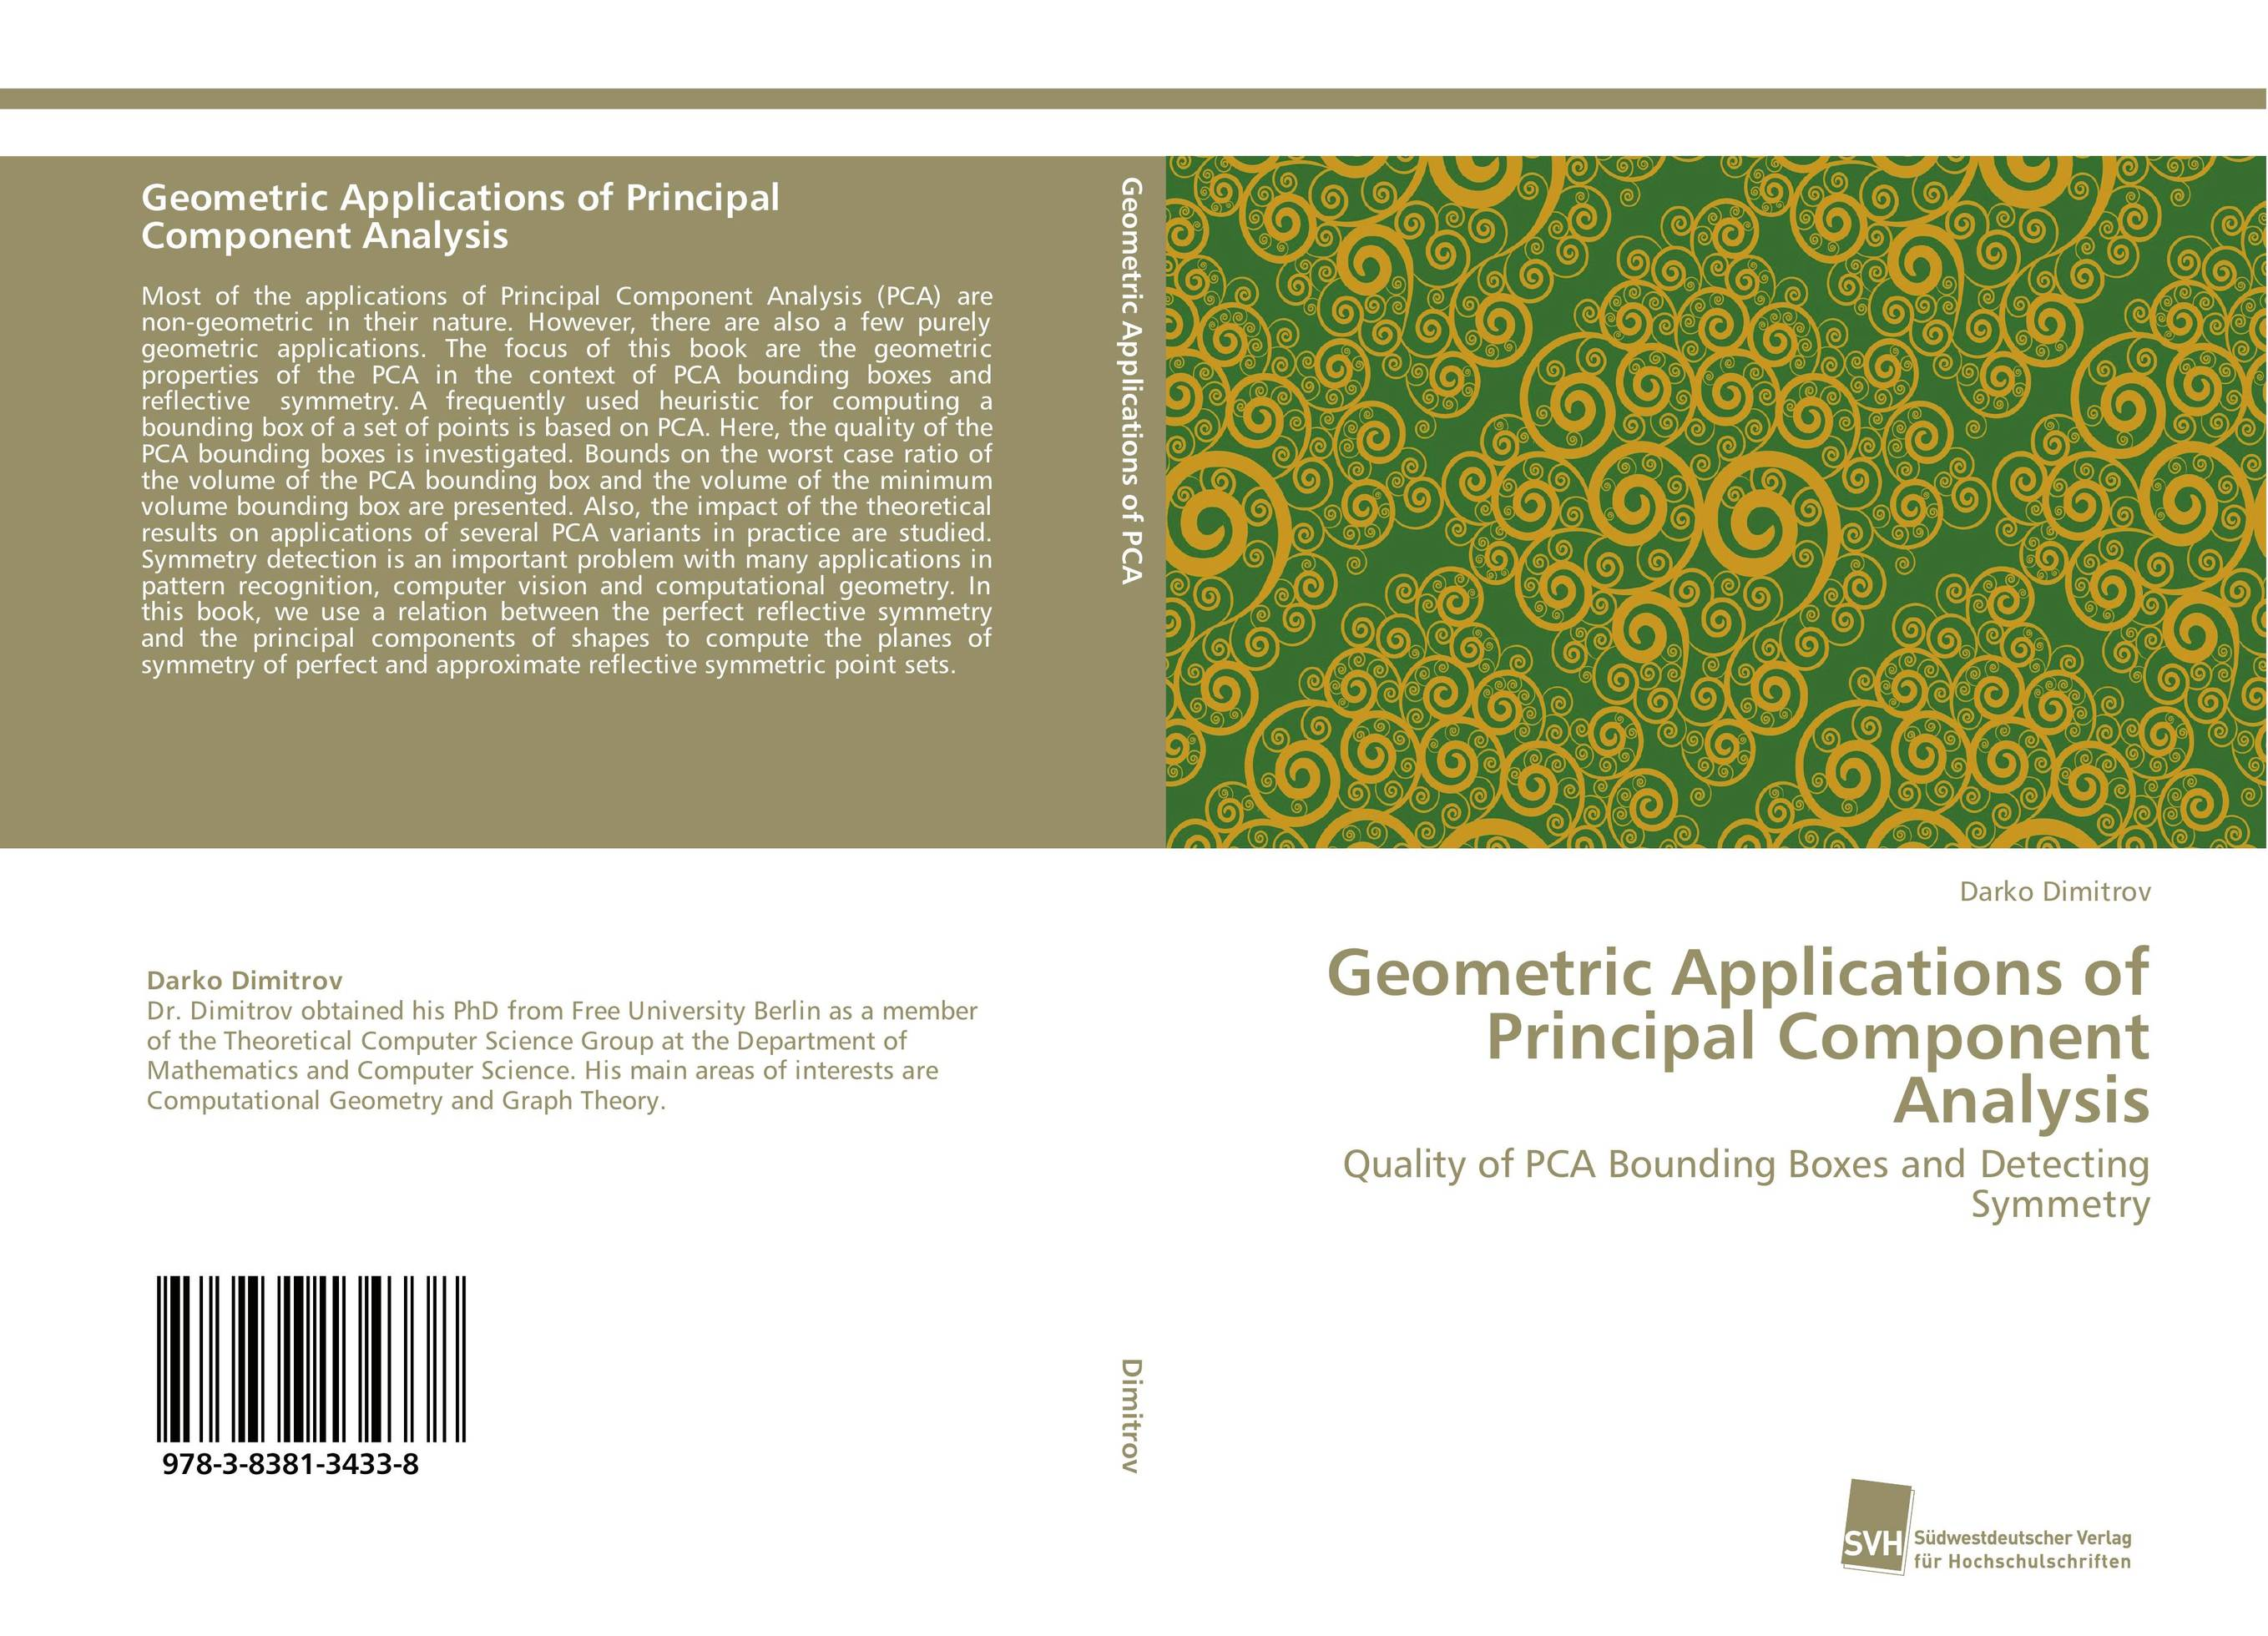 """Geometric Applications of Principal Component Analysis freedom a documentary history of emancipation 1861a€""""1867 2 volume set"""